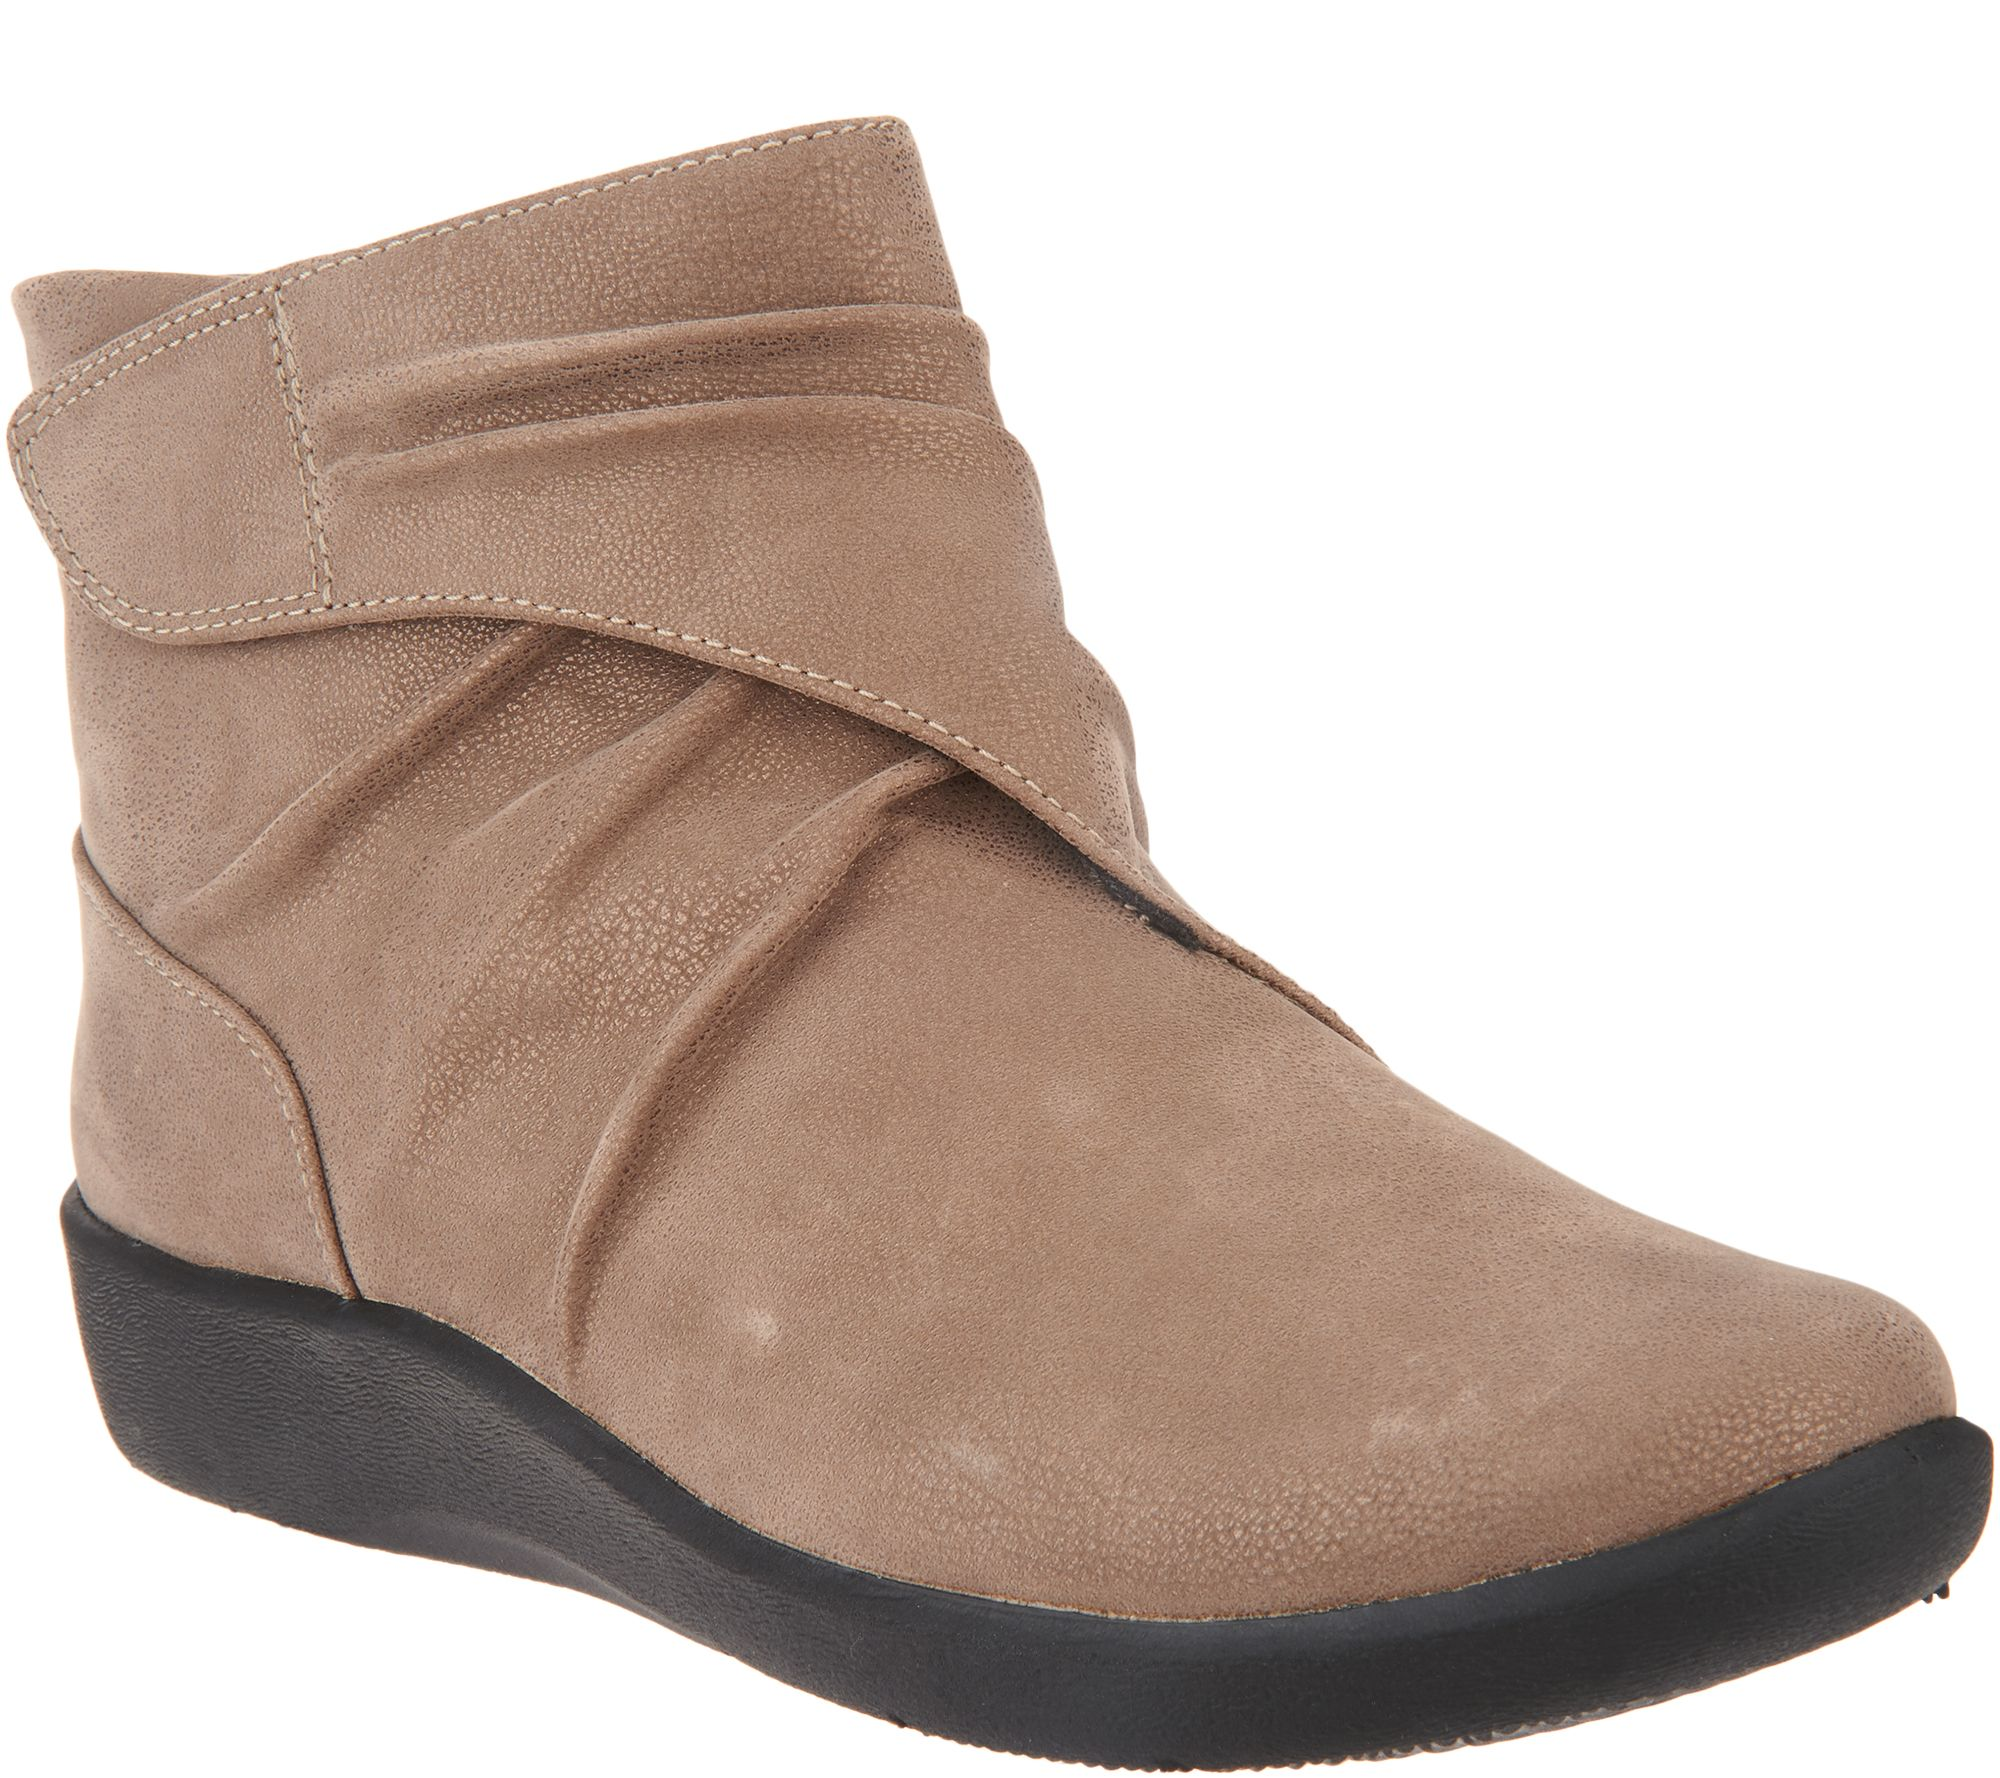 df08add8cfb3 CLOUDSTEPPERS by Clarks Ruched Ankle Boots - Sillian Tana - Page 1 — QVC.com